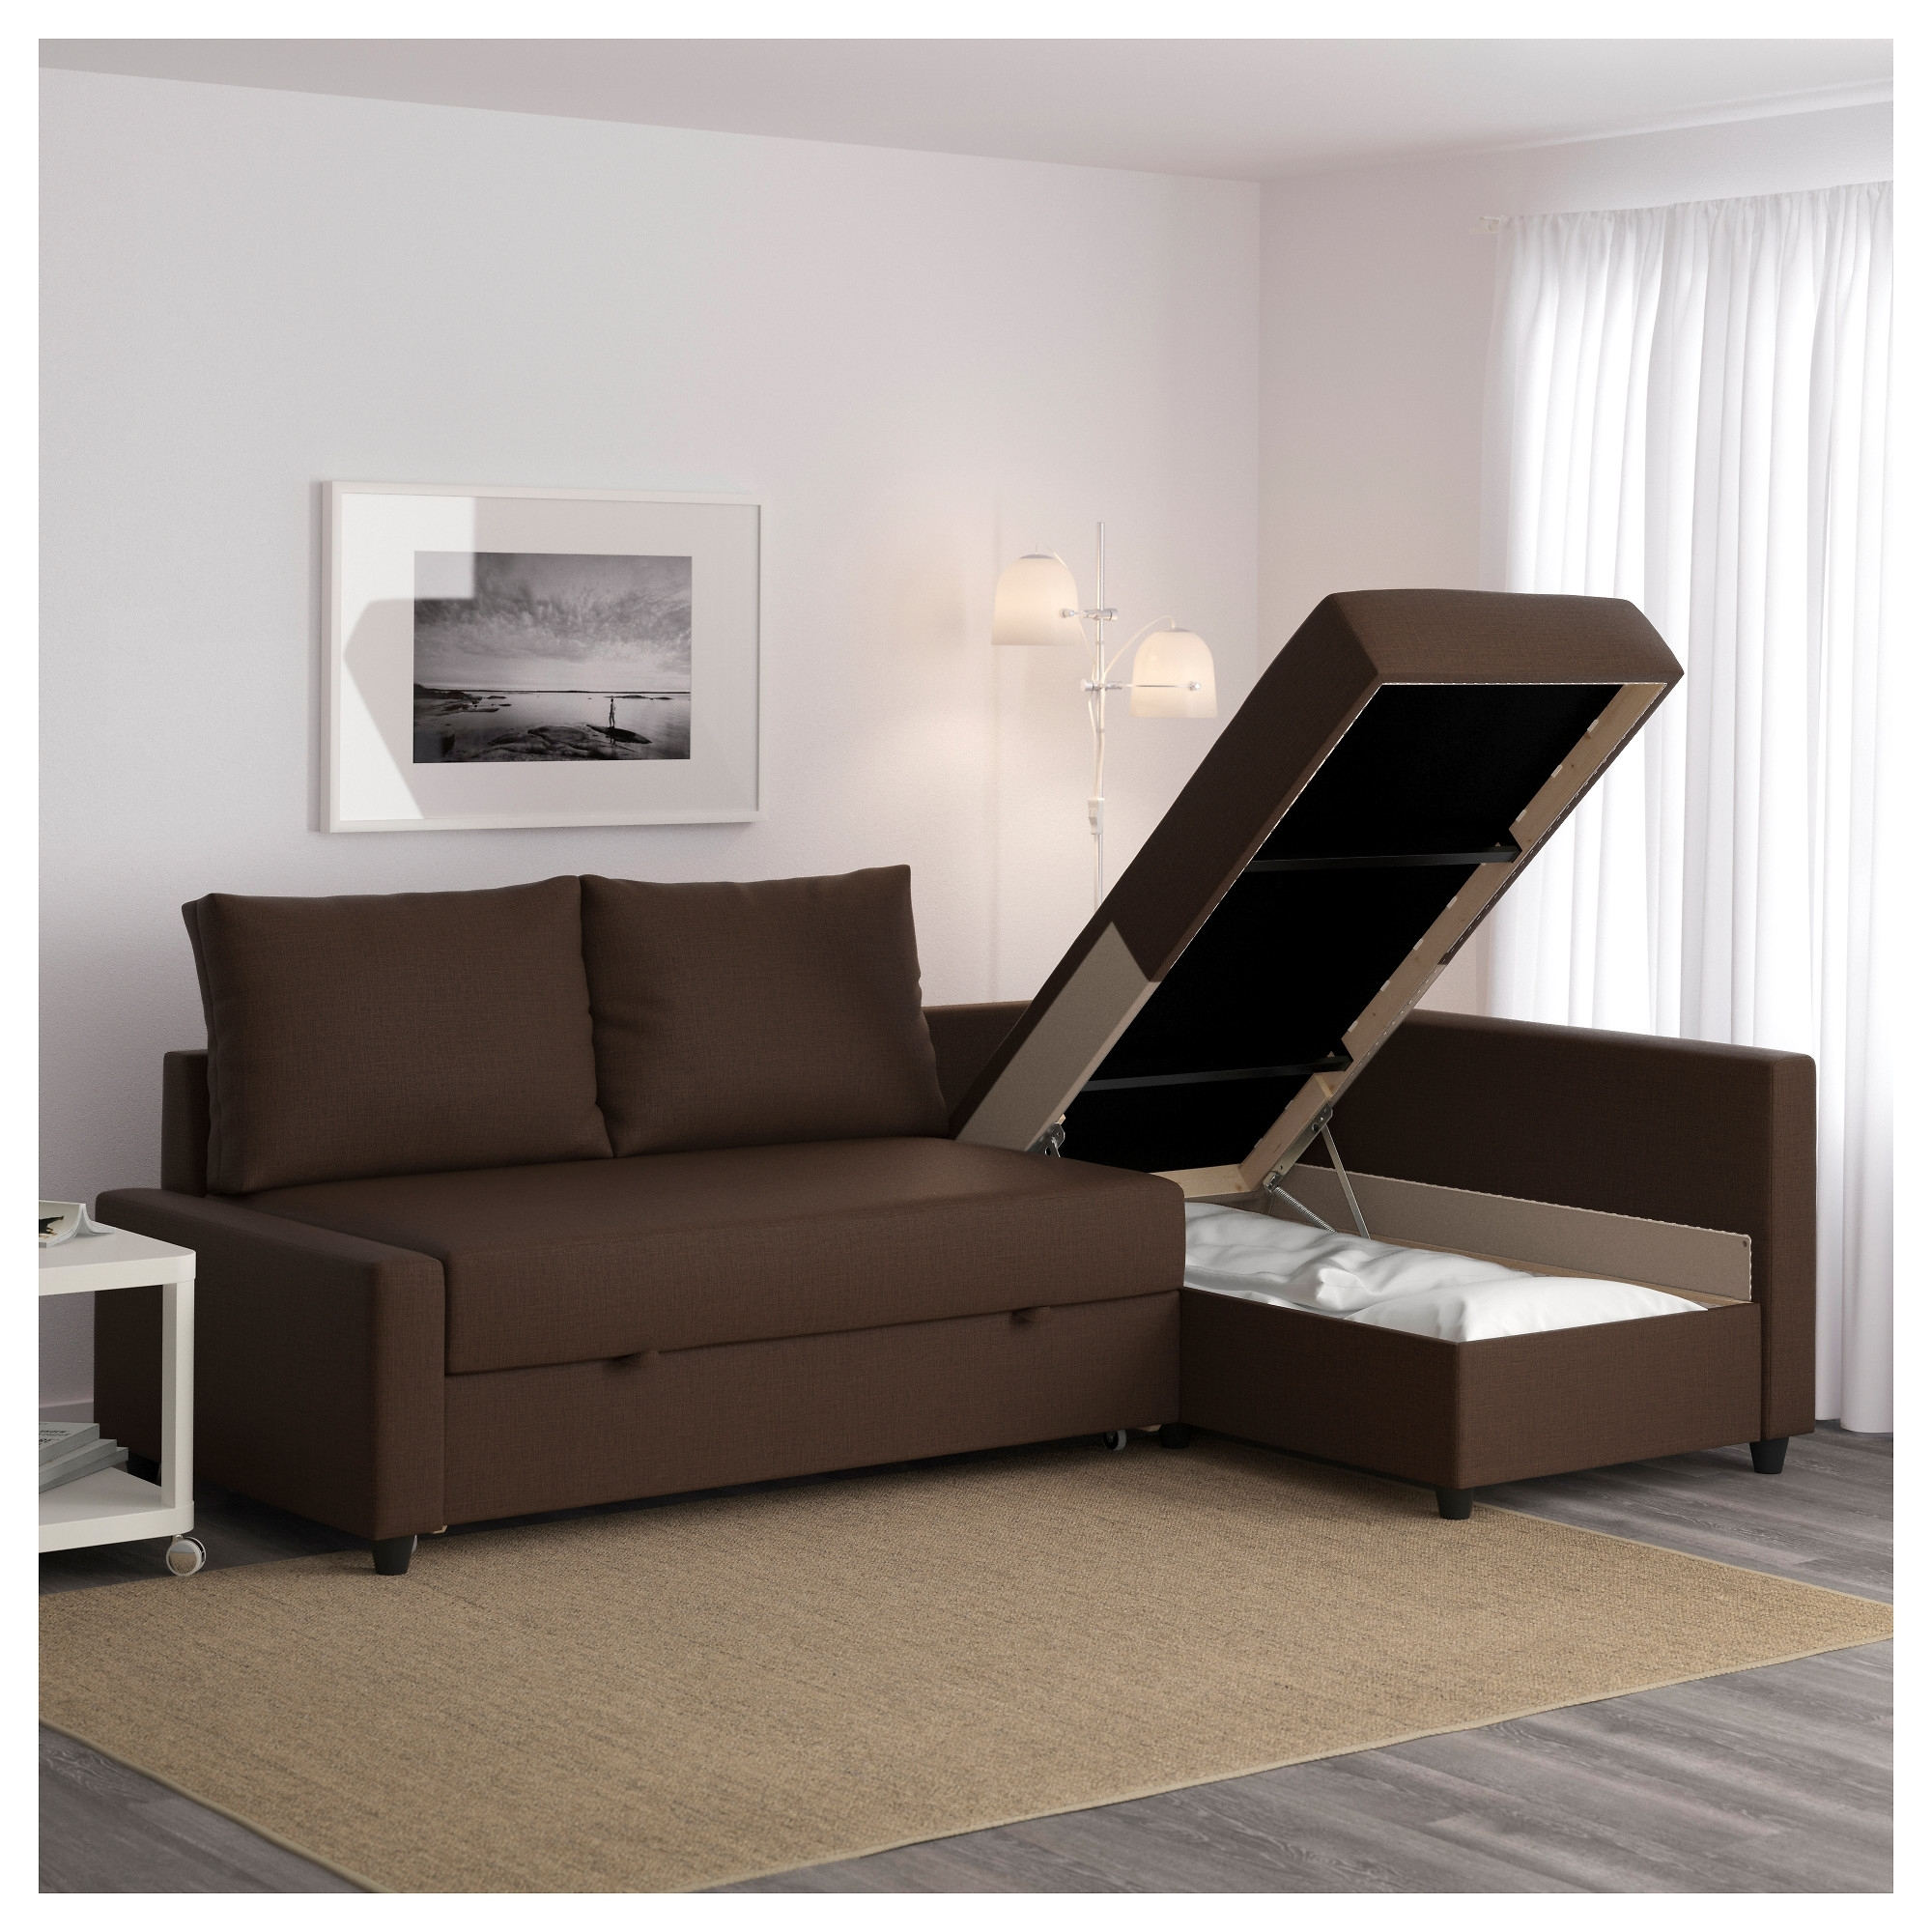 Friheten Sleeper Sectional,3 Seat W/storage – Skiftebo Dark Gray In Trendy Leather Sofas With Storage (View 7 of 20)